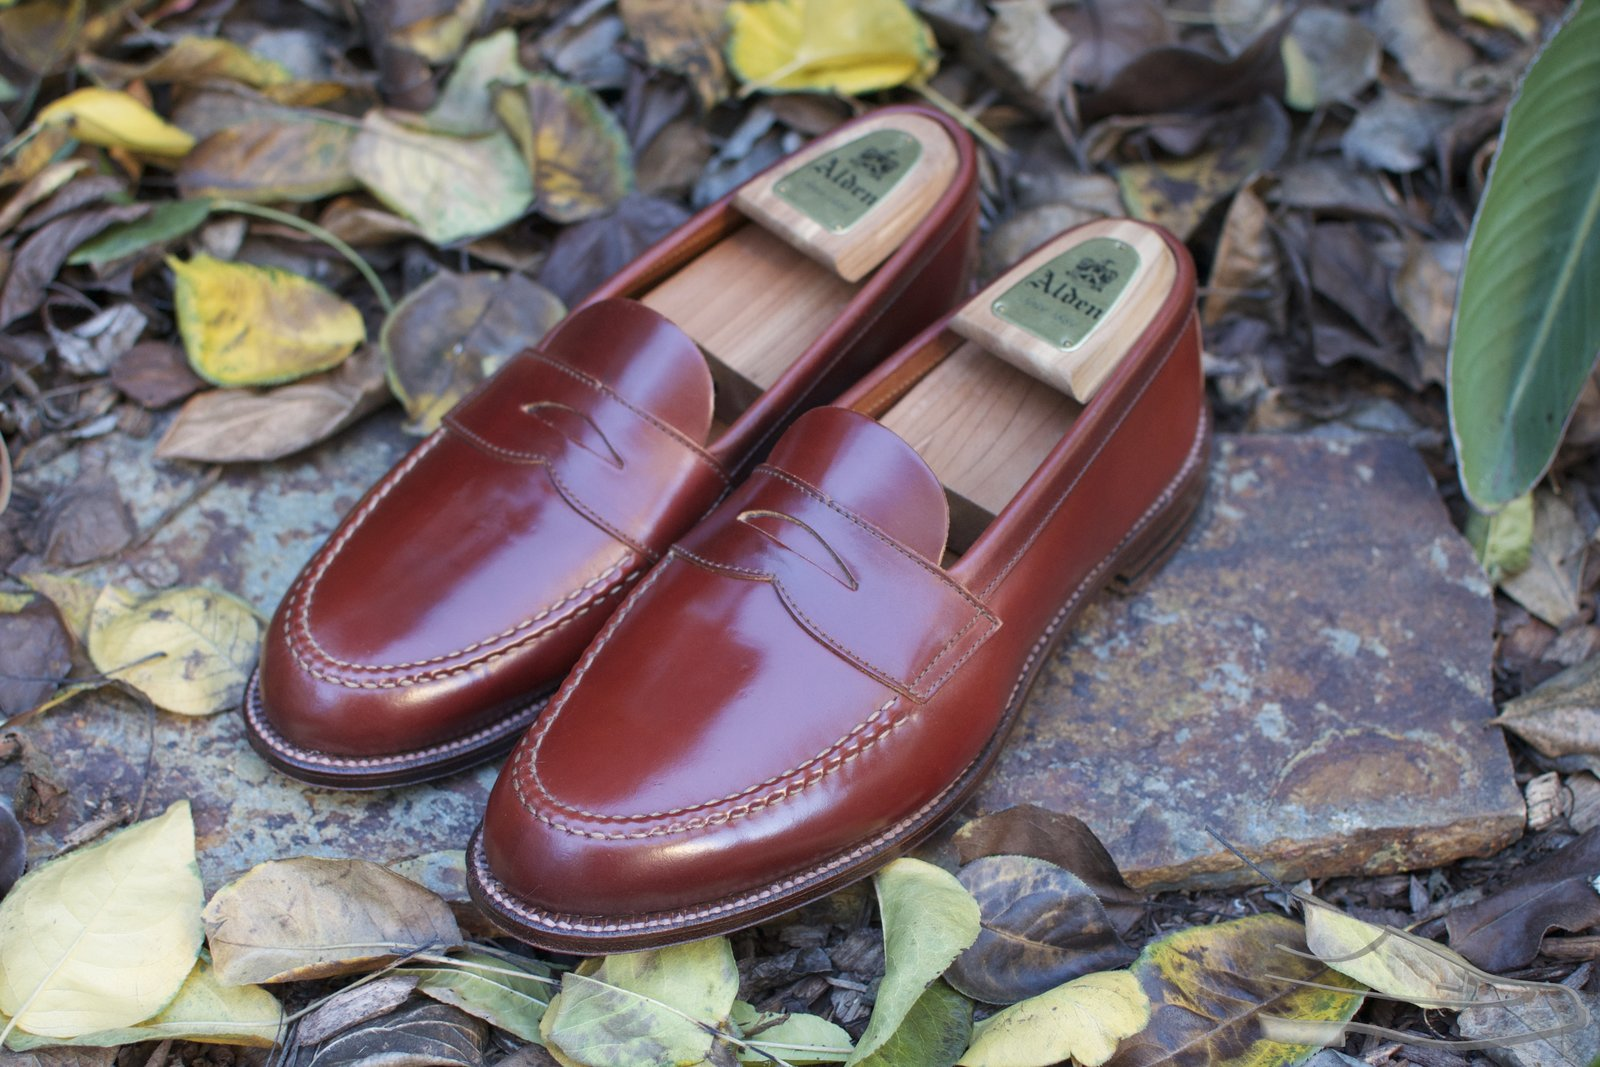 Alden Color #2 Unlined Shell Cordovan LHS - 2020-11-29 - 1.jpg